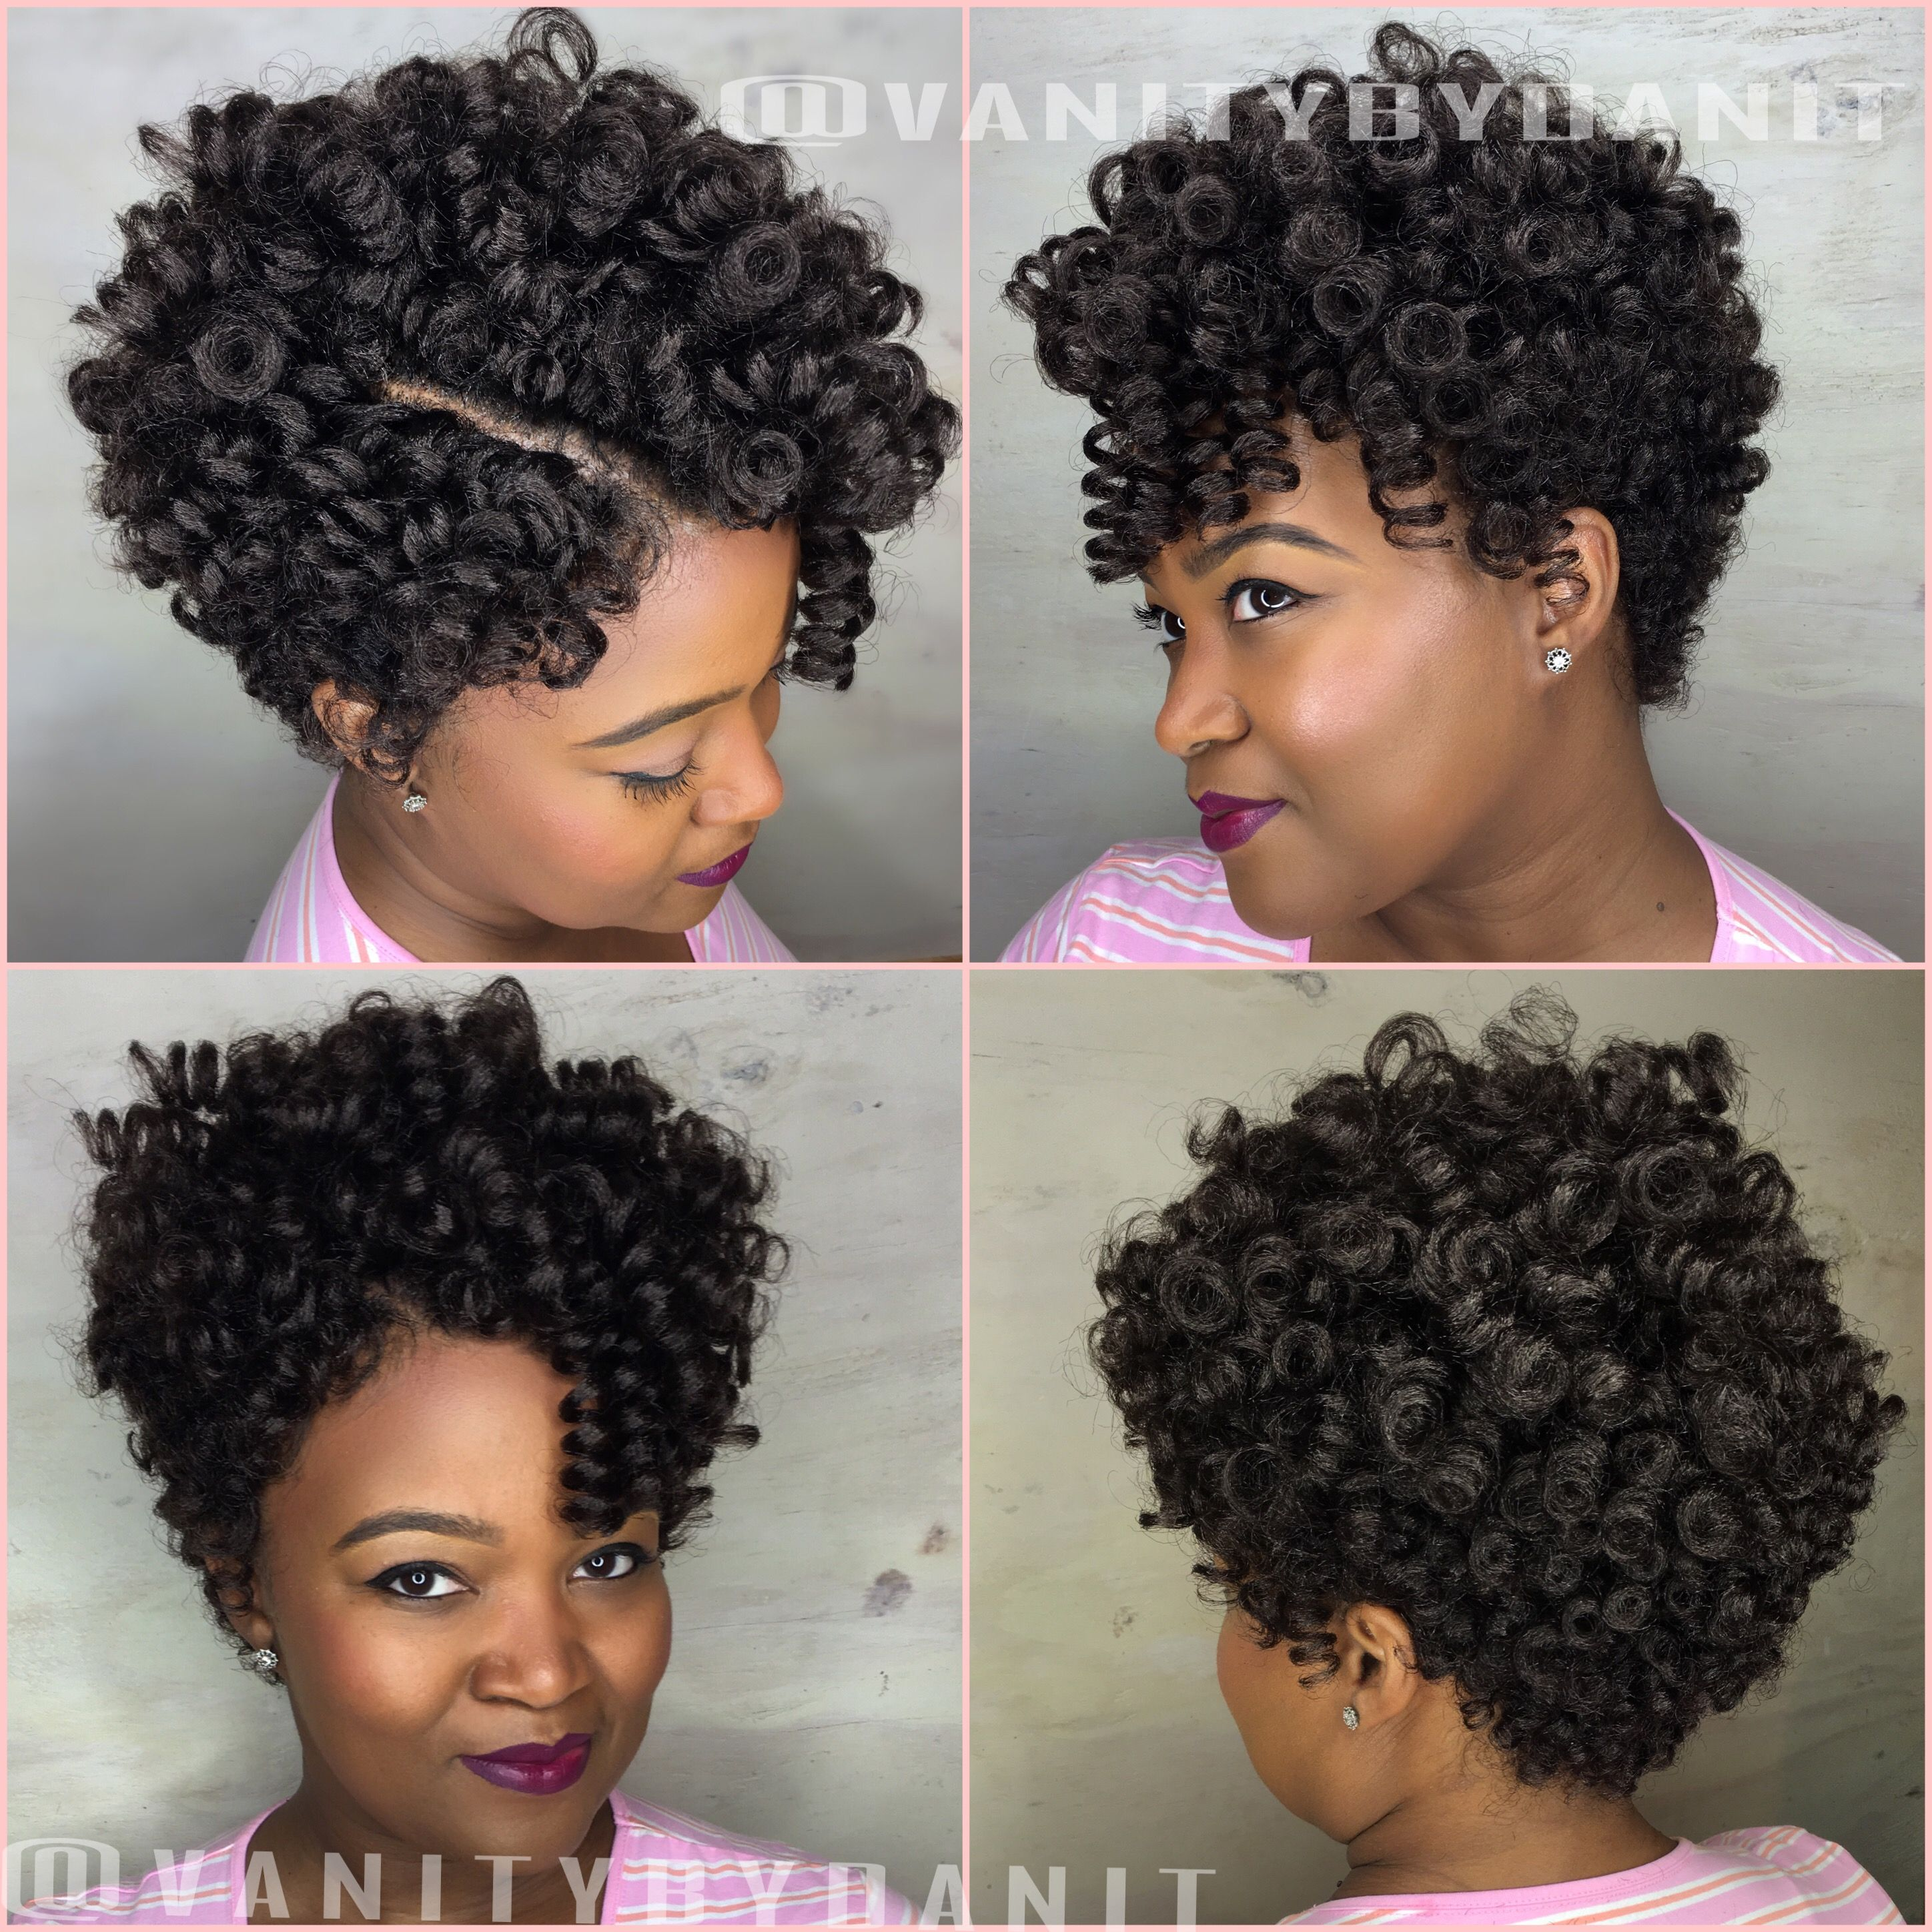 Tapered cut crochet braids no hair left out painless neat